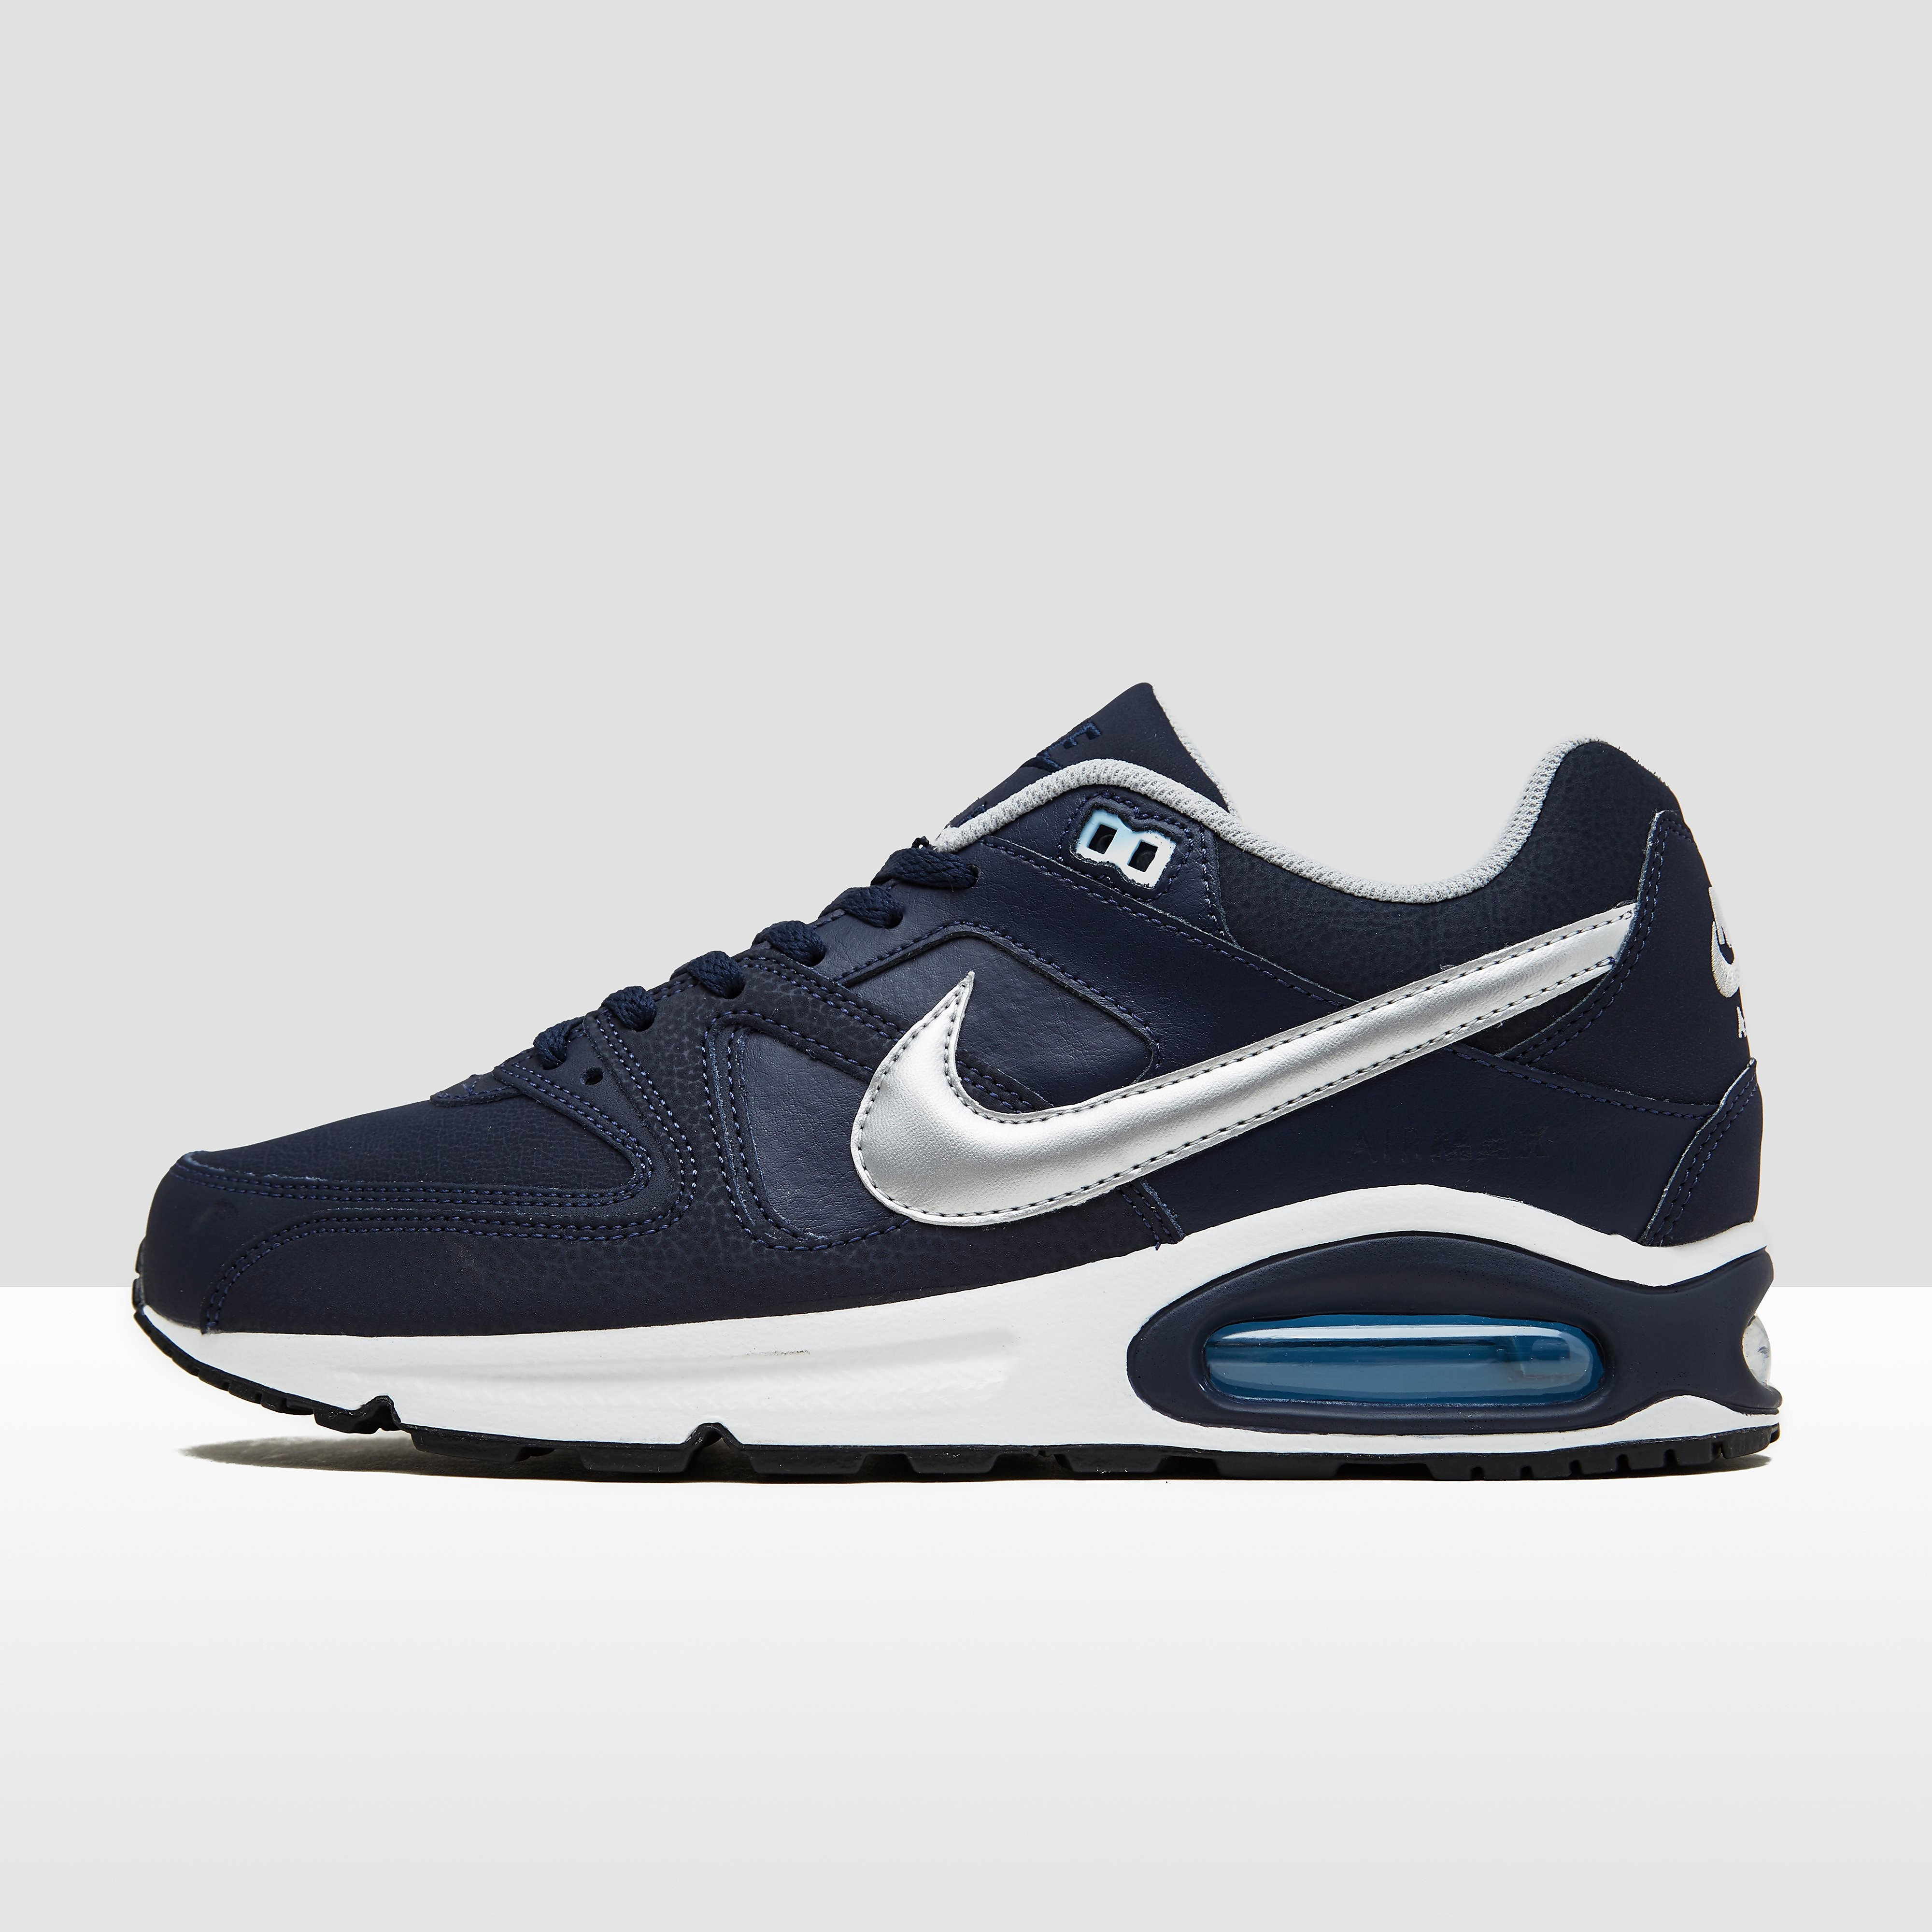 NIKE AIR MAX COMMAND LEATHER SNEAKERS BLAUW HEREN